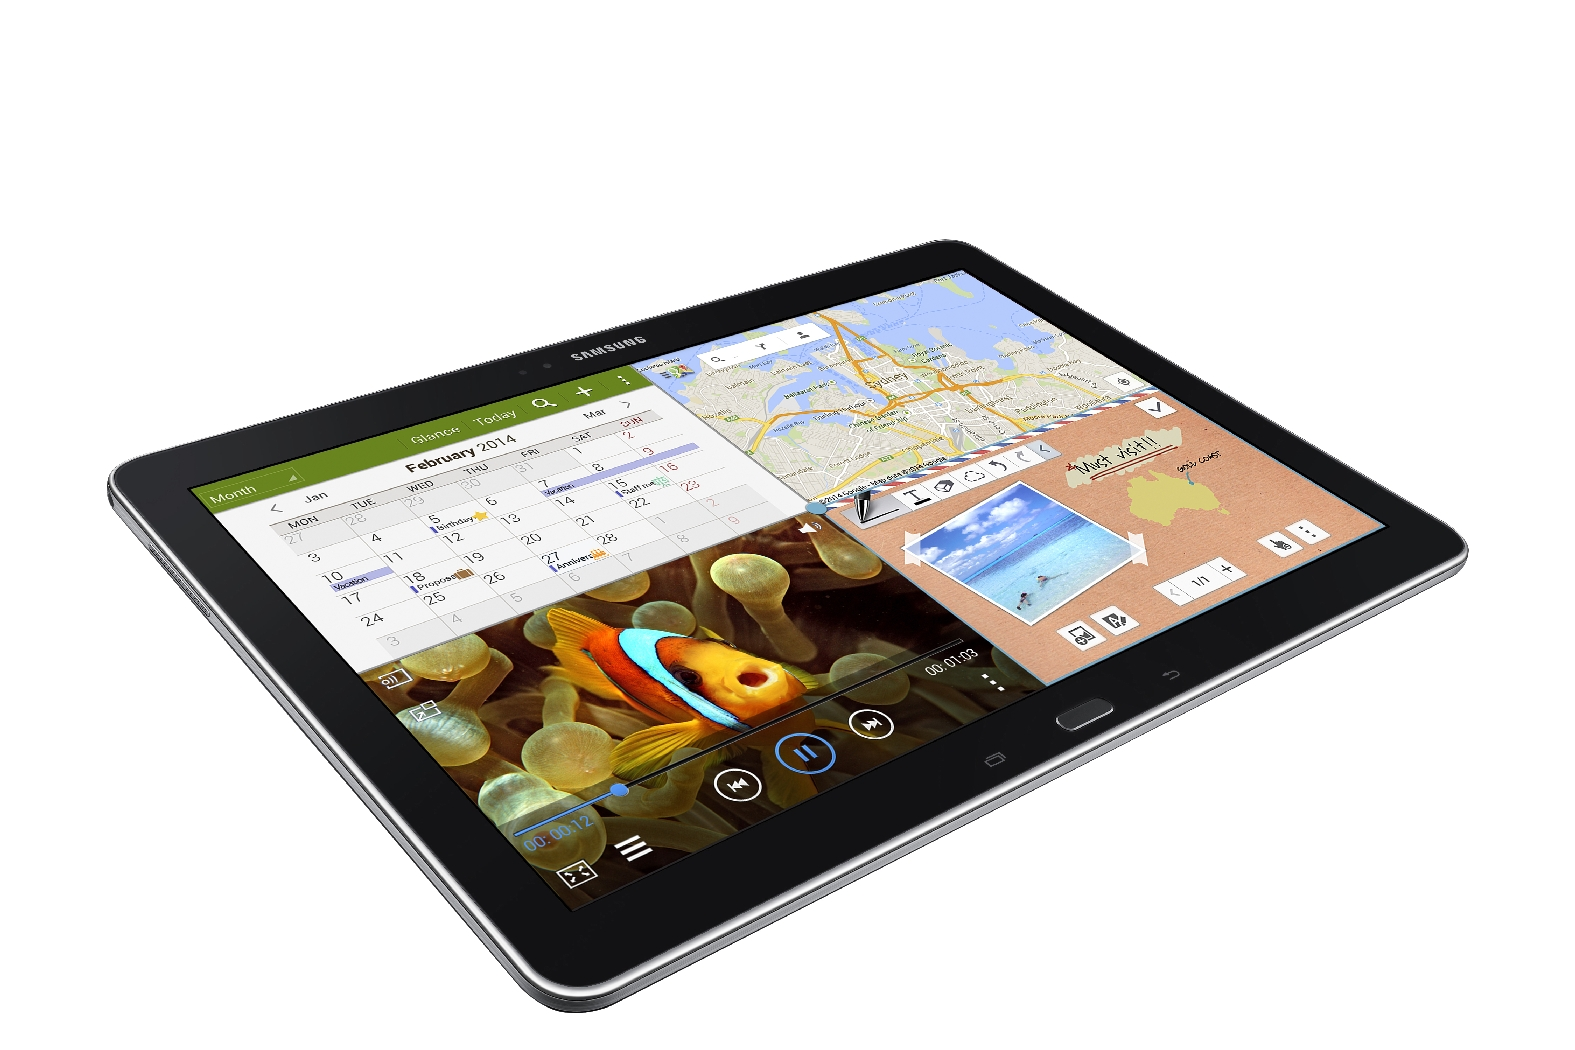 Samsung Galaxy Tab PRO 12.2 Taking Orders for $649 in US